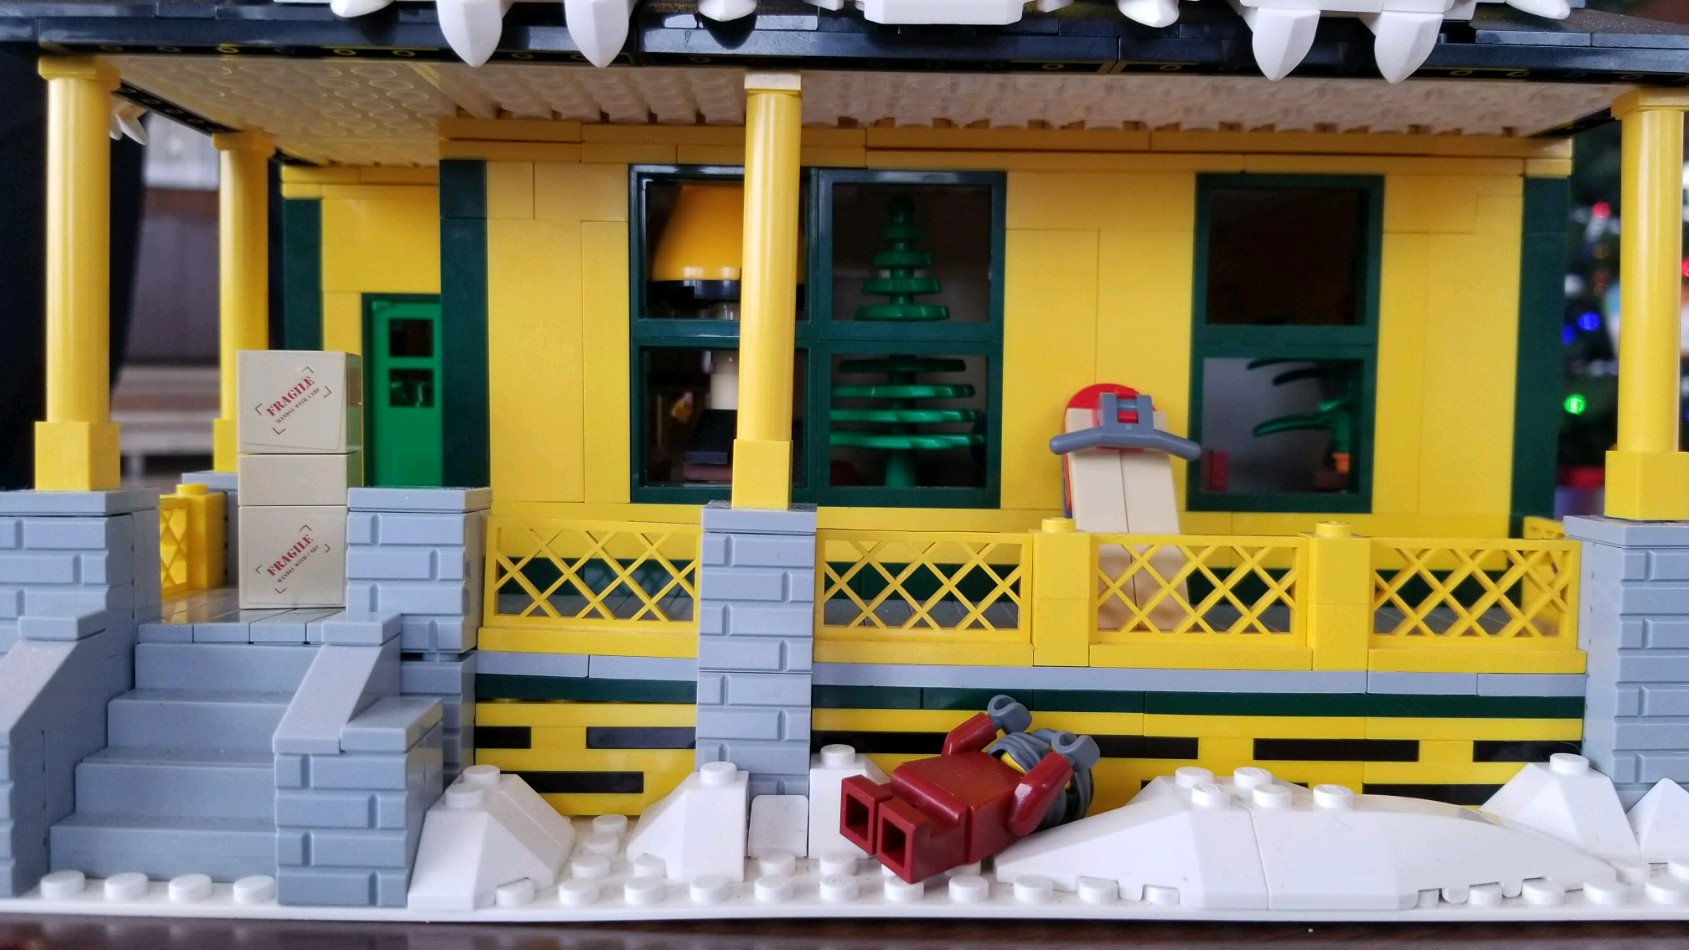 Lego has a policy that any creation that is able to get 10,000 signatures will be considered.